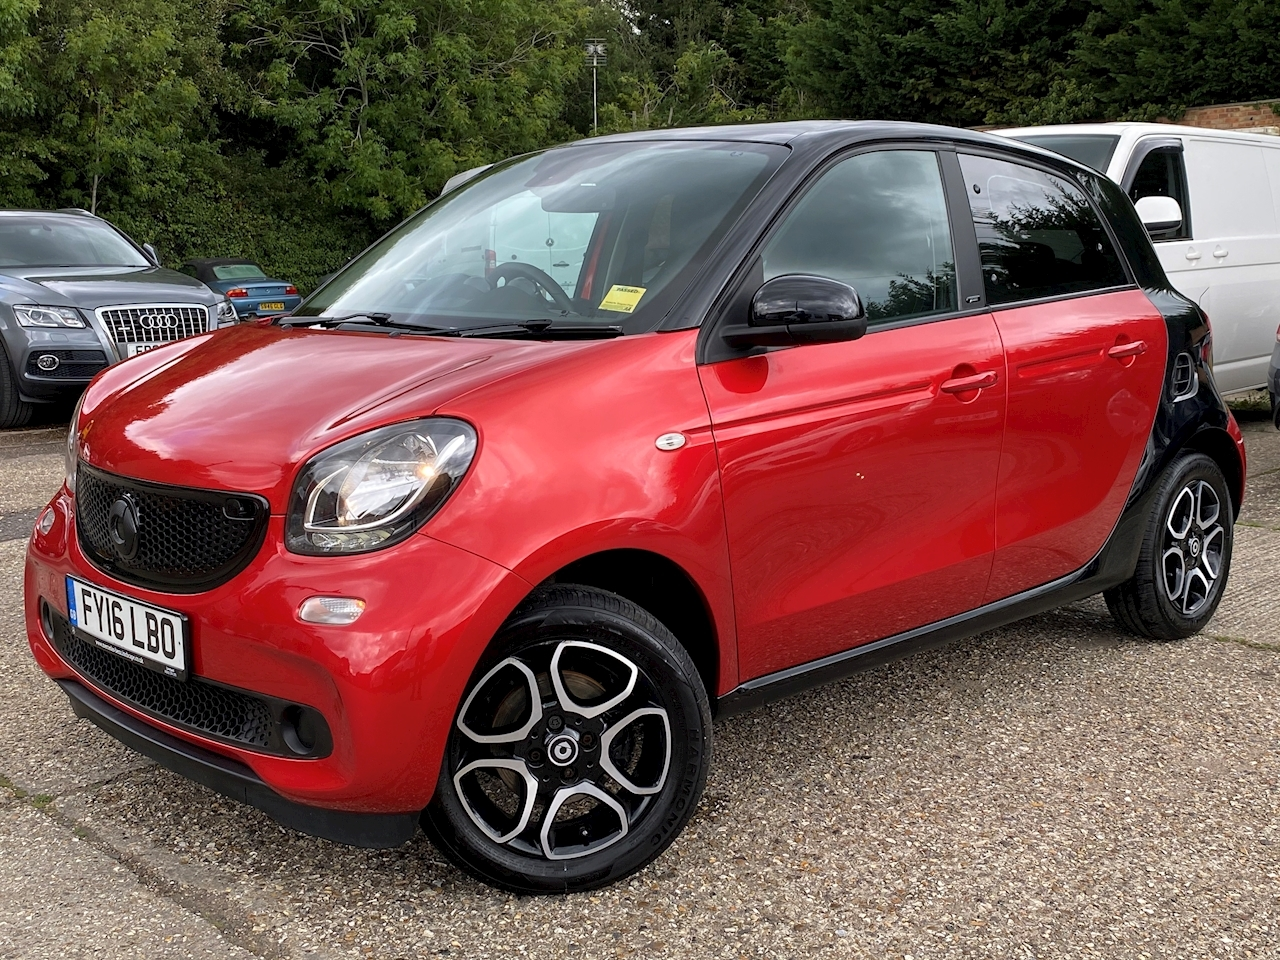 forfour Prime Hatchback 1.0 Manual Petrol